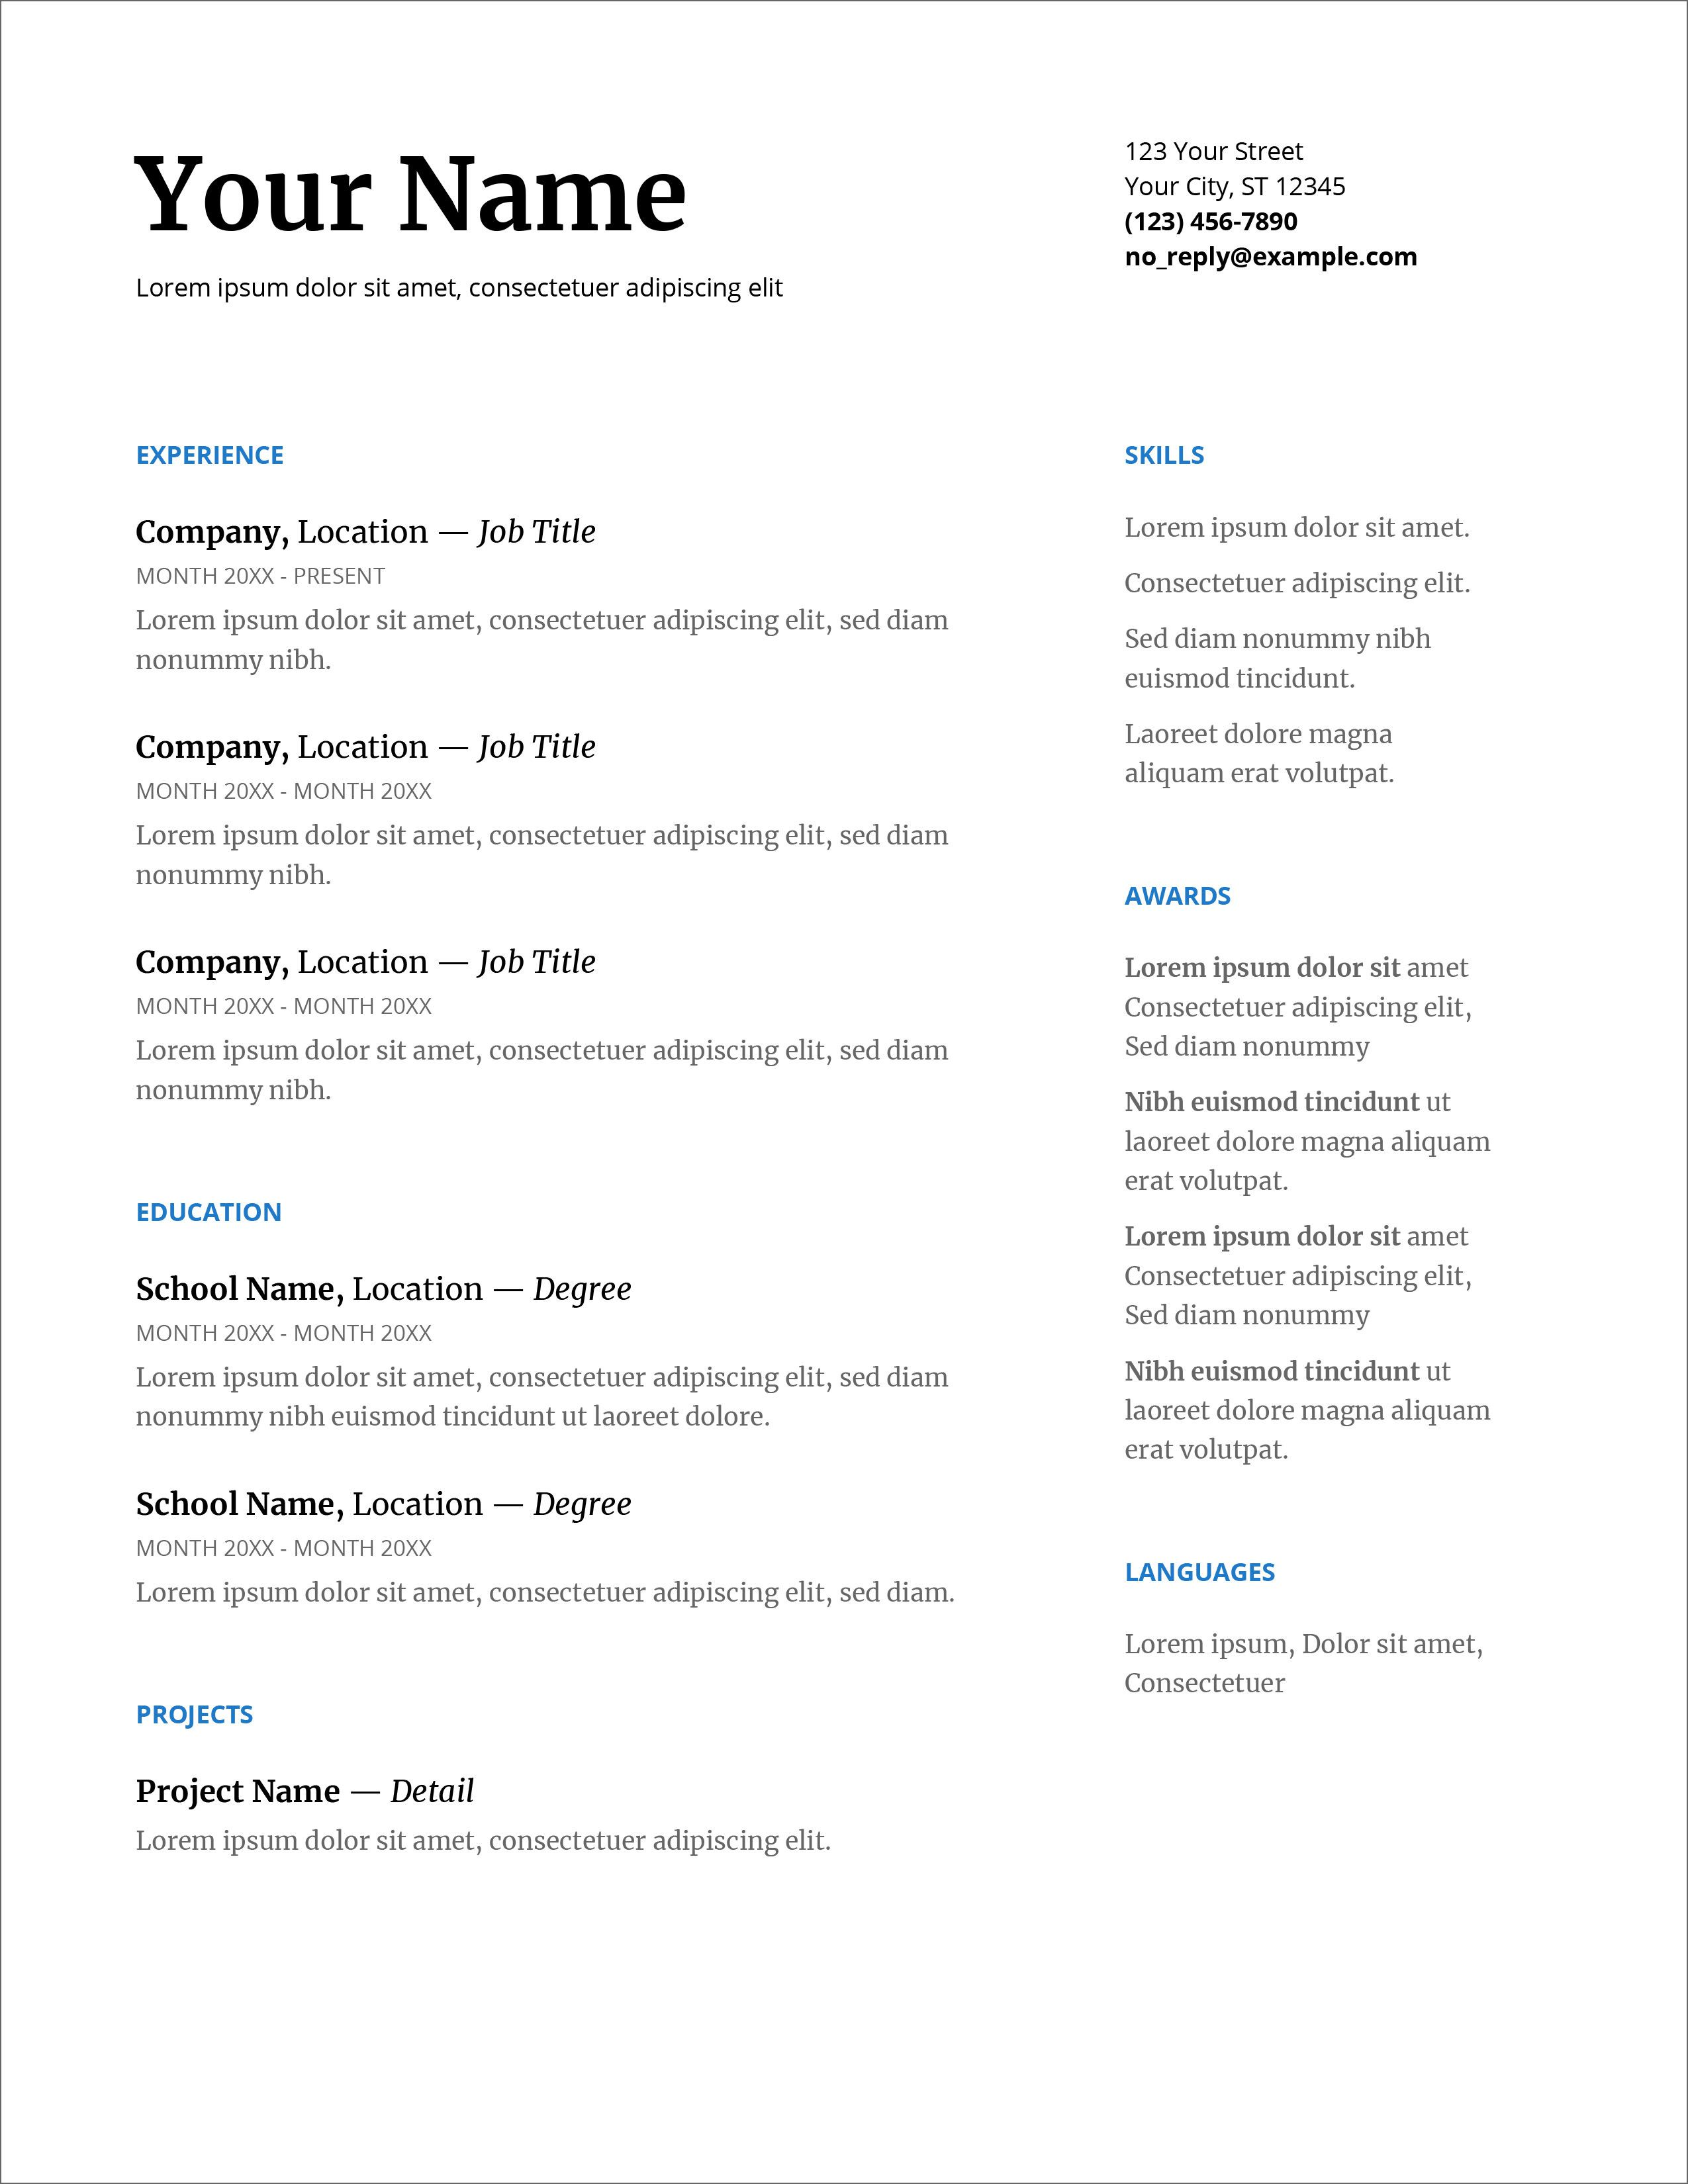 007 Fearsome Download Resume Template Word 2007 High Resolution Full